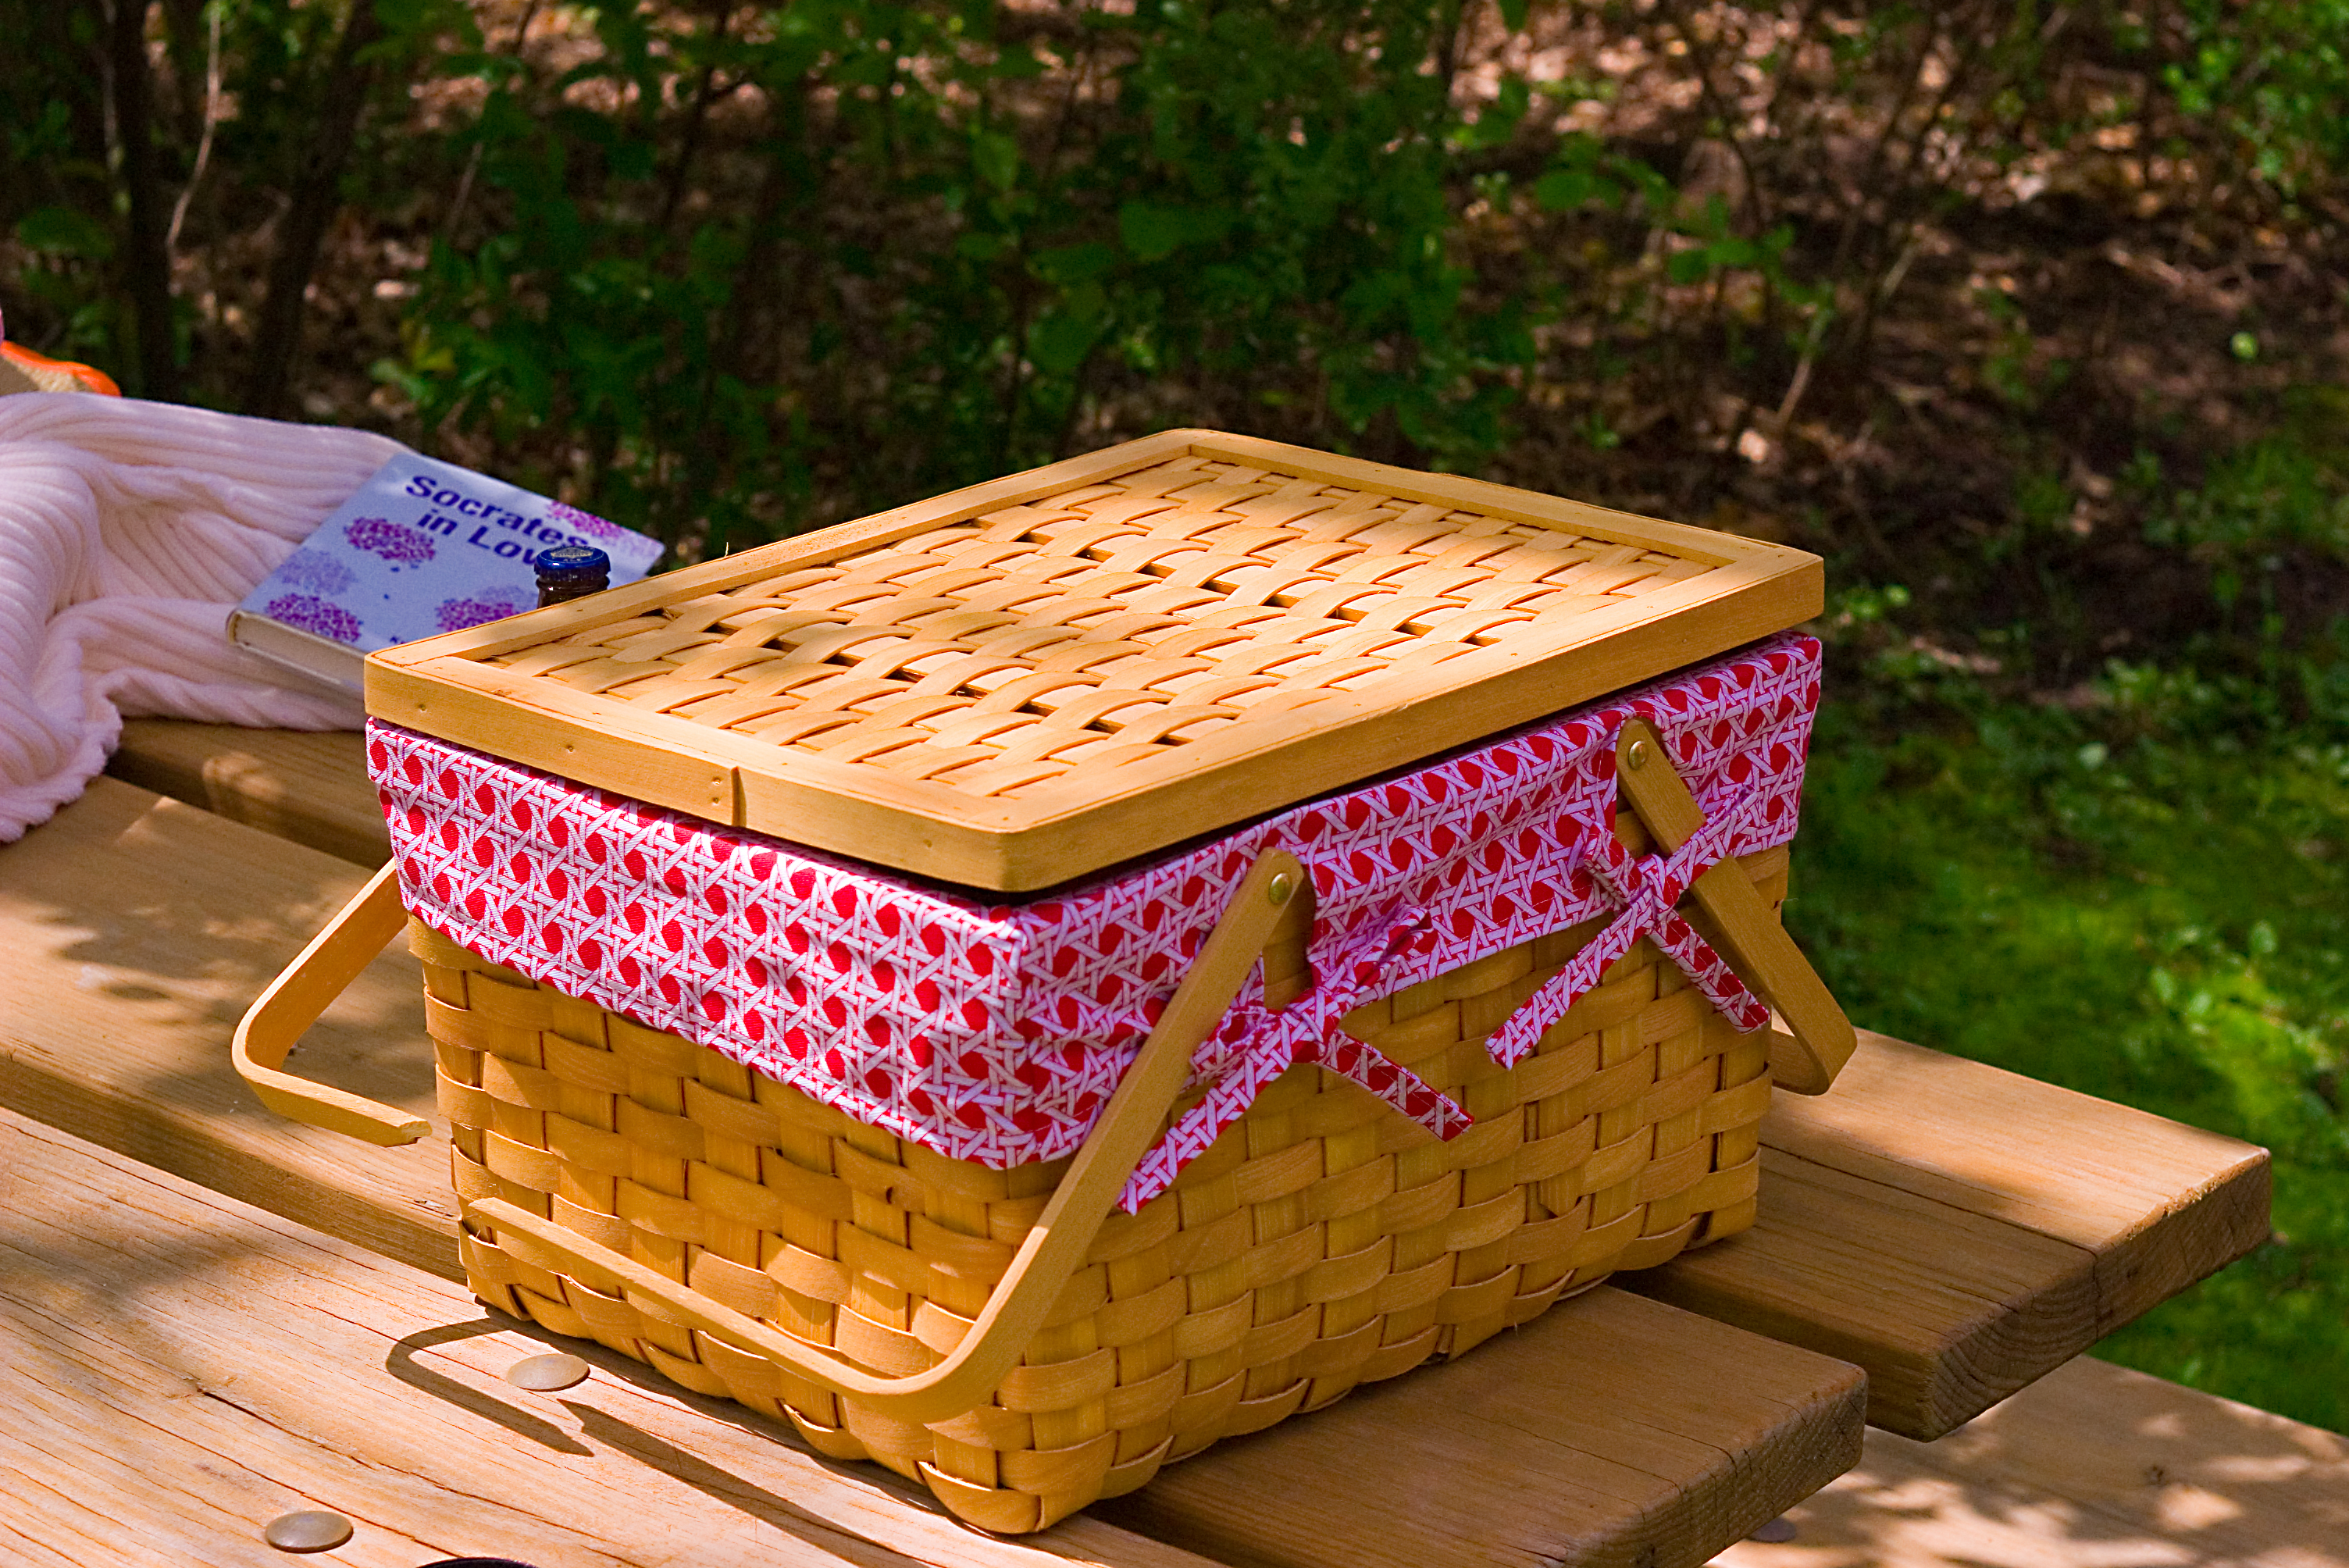 Creative Picnic Basket Ideas : Creative things to do for valentine s day her campus